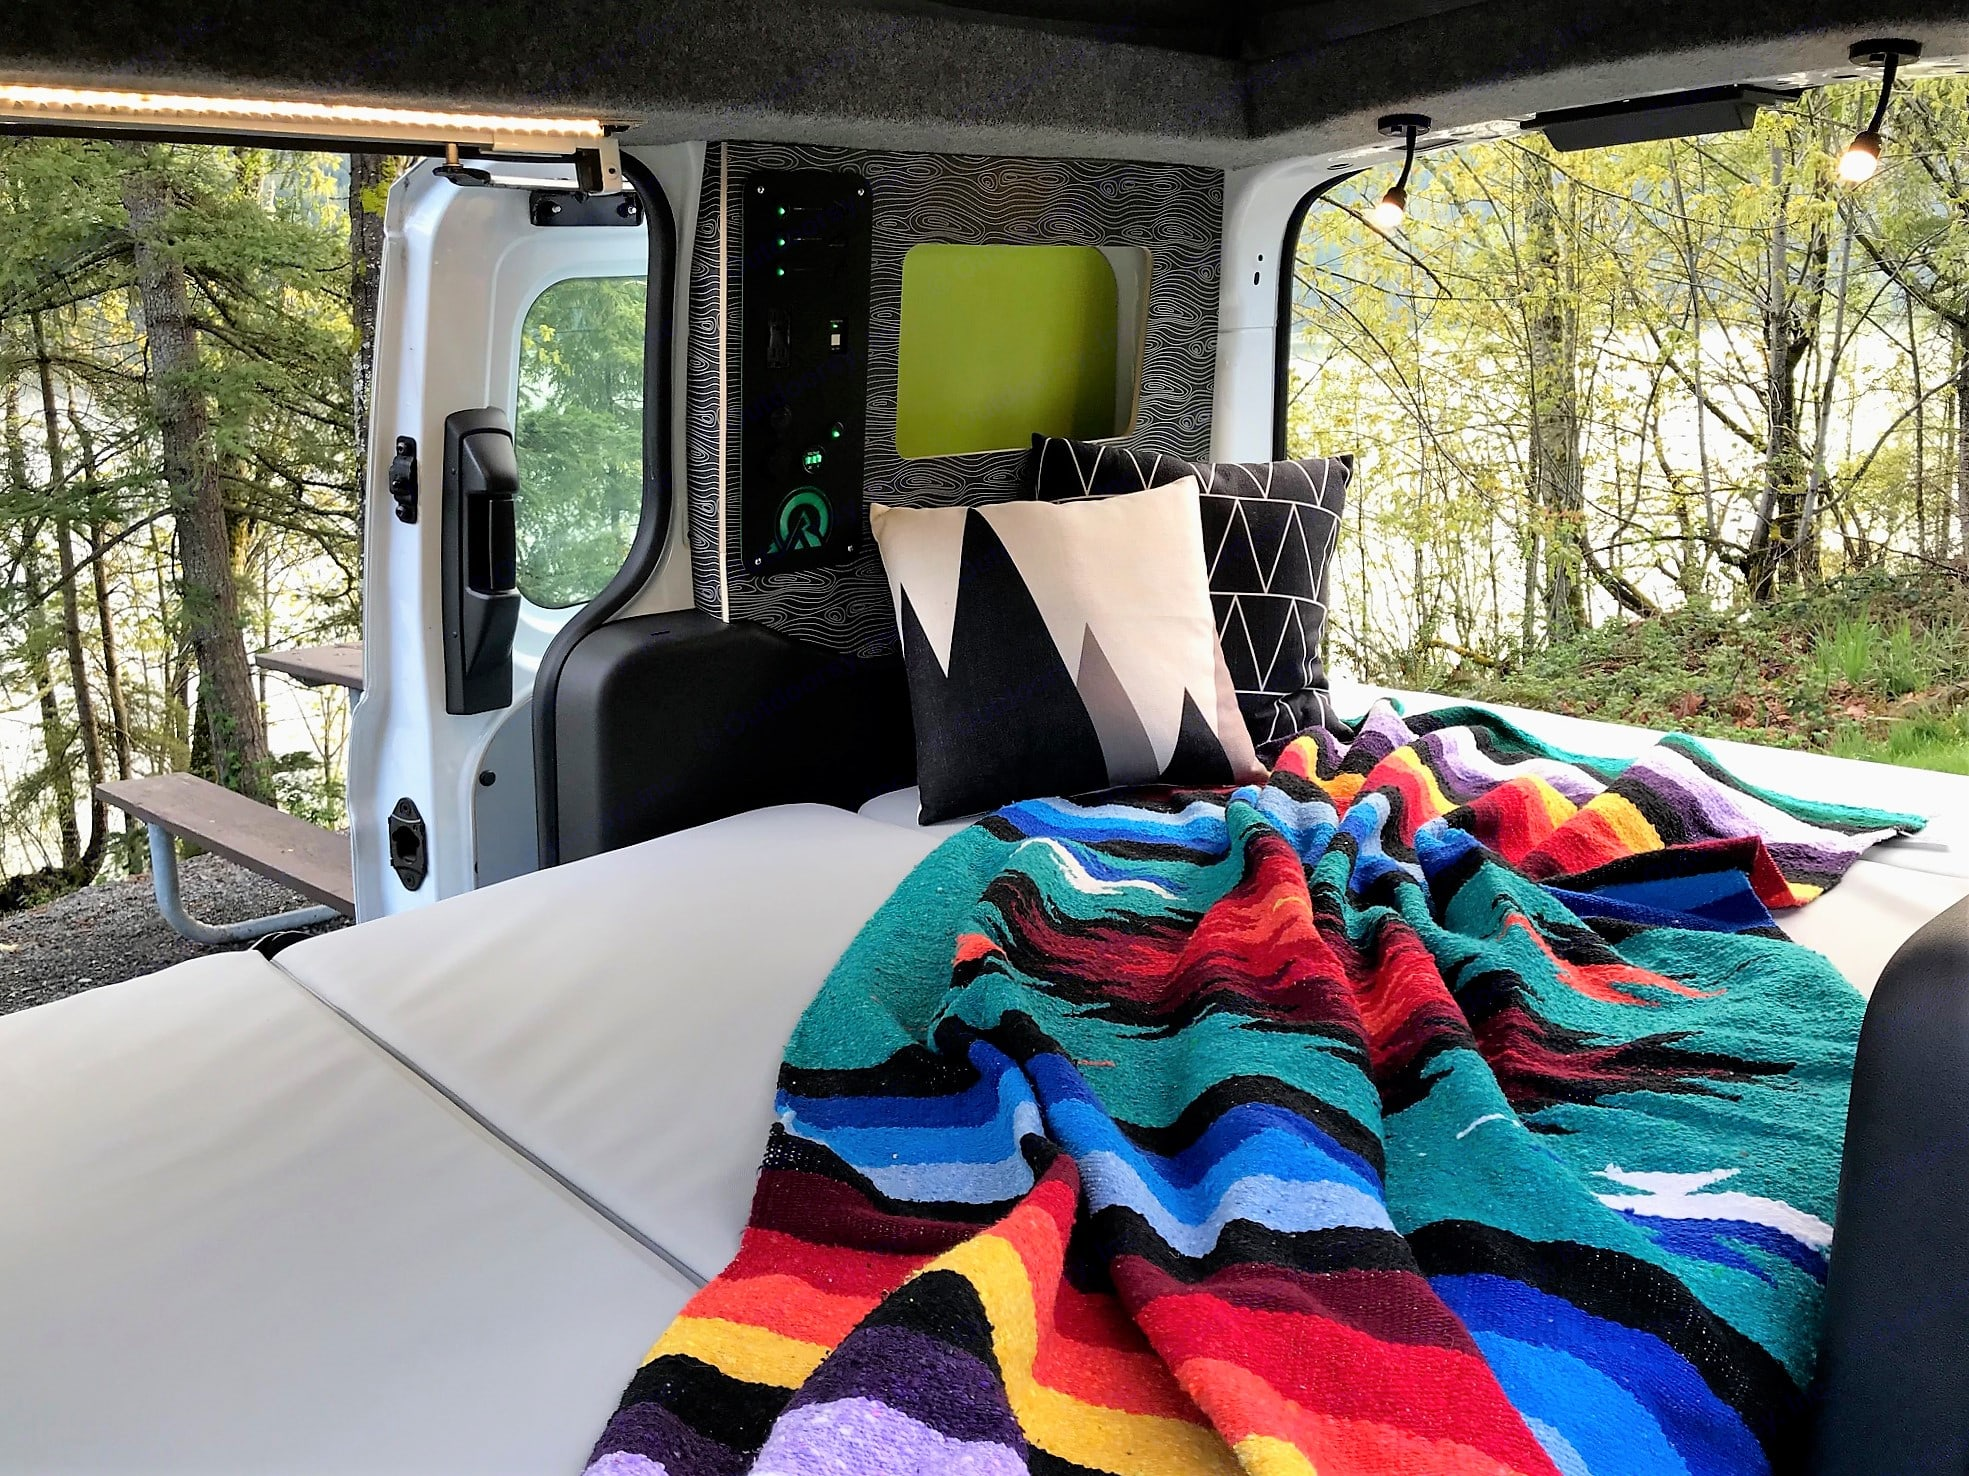 Pull out the bench to convert it into a 4' x 6.5' (1.2m x 2m)  bed that comfortably sleeps 2 adults, even the taller ones.. Ford Transit Connect 2016